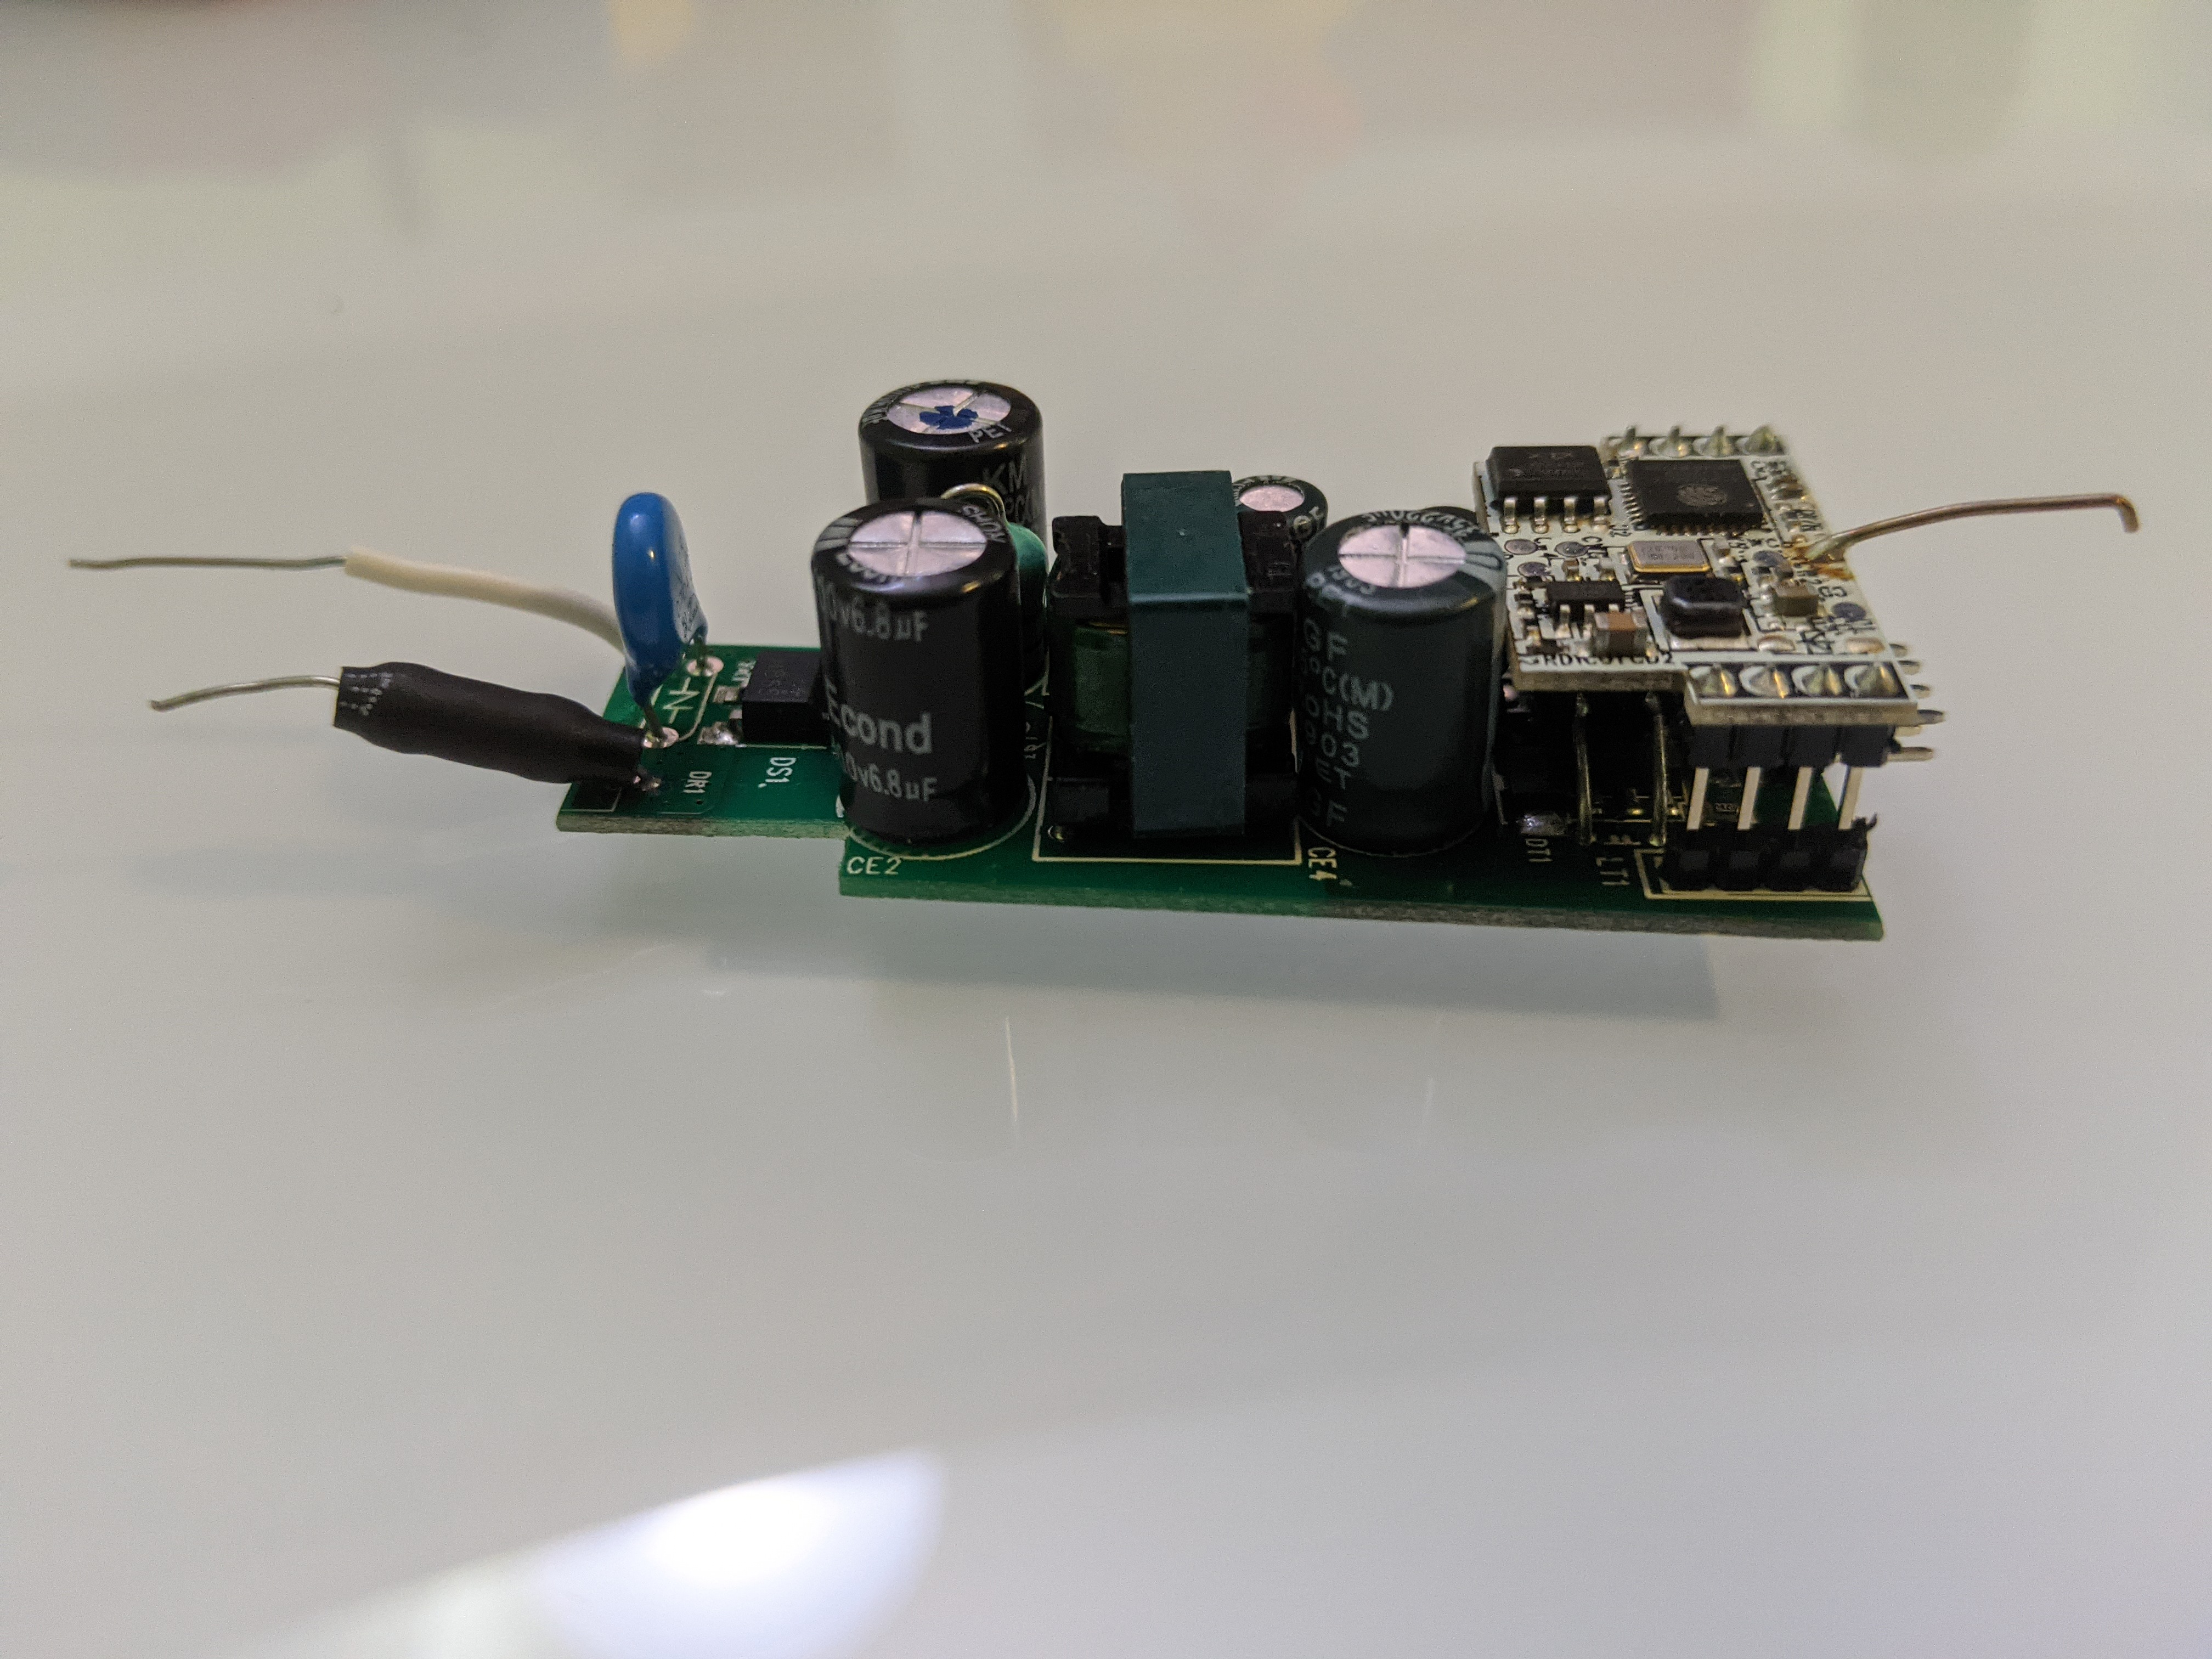 Side view of PCB and power board